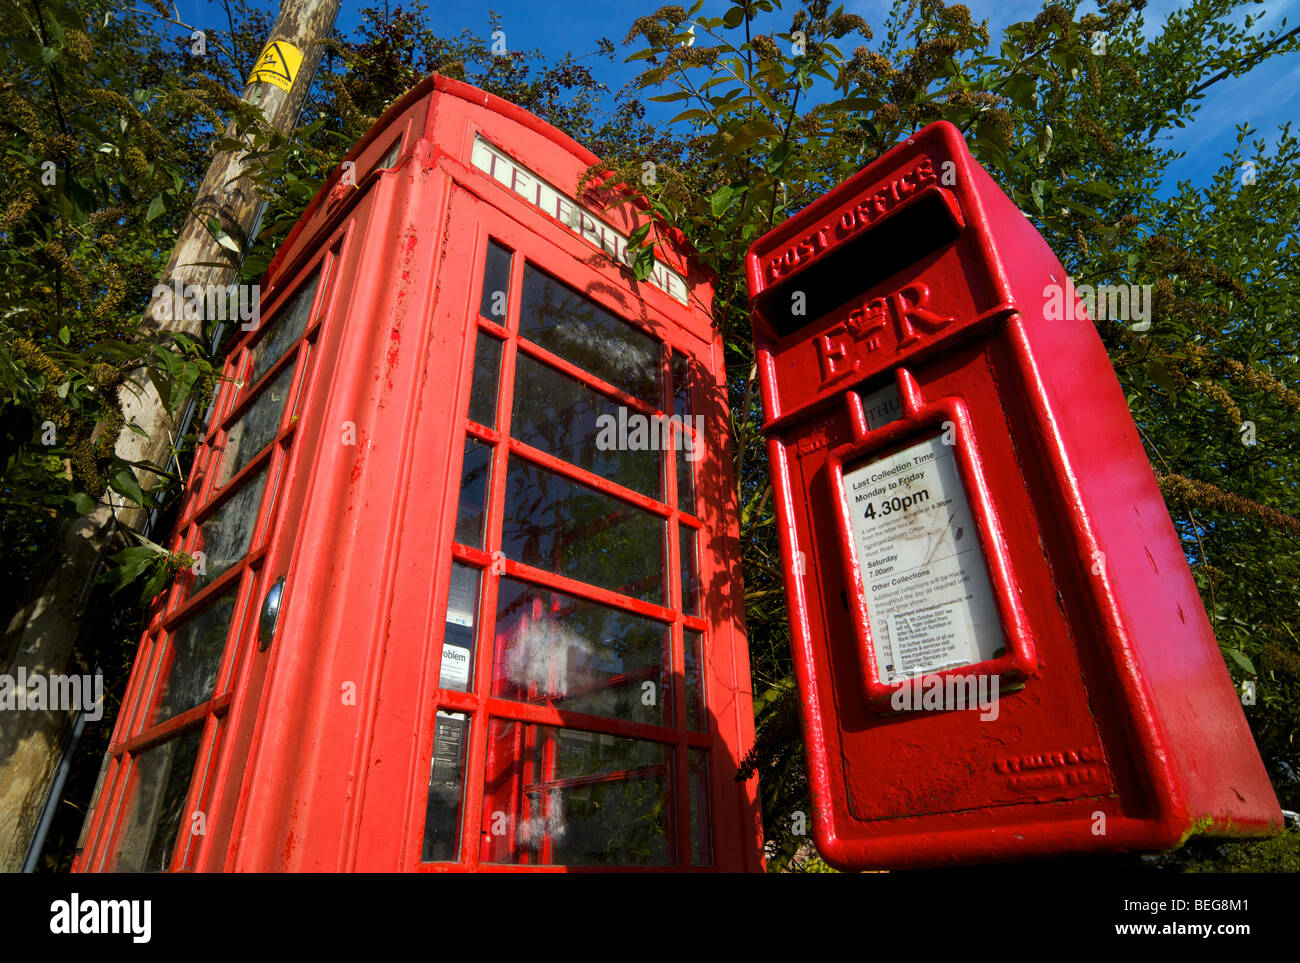 Old style telephone kiosk and post box in an English village in Sussex UK - Stock Image